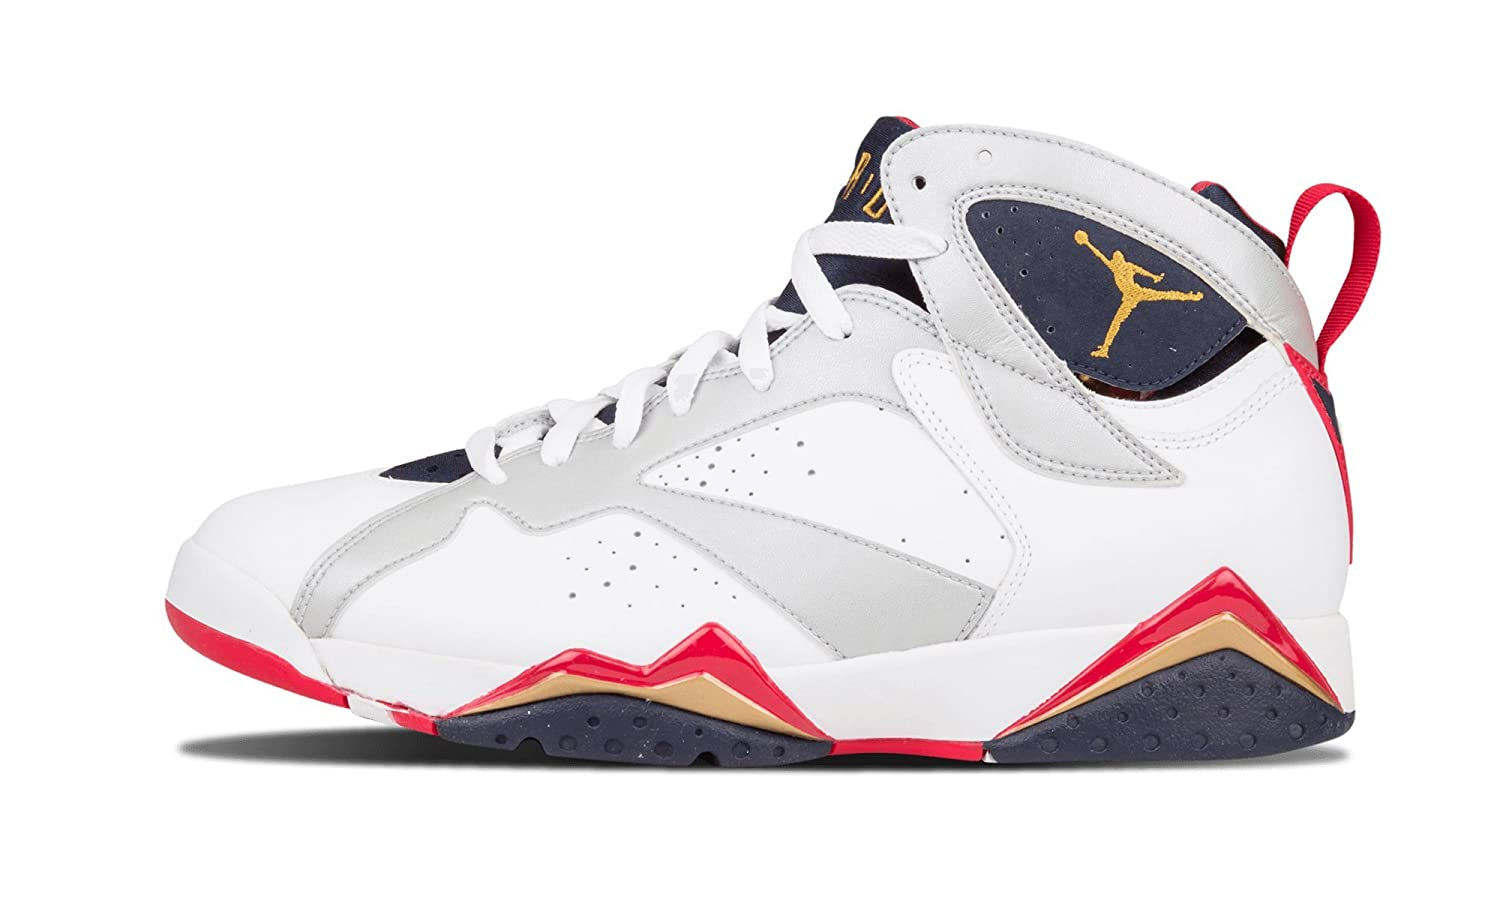 uk availability 0961d 24b56 NIKE Mens Air Jordan 7 Retro Olympic Leather Basketball Shoes